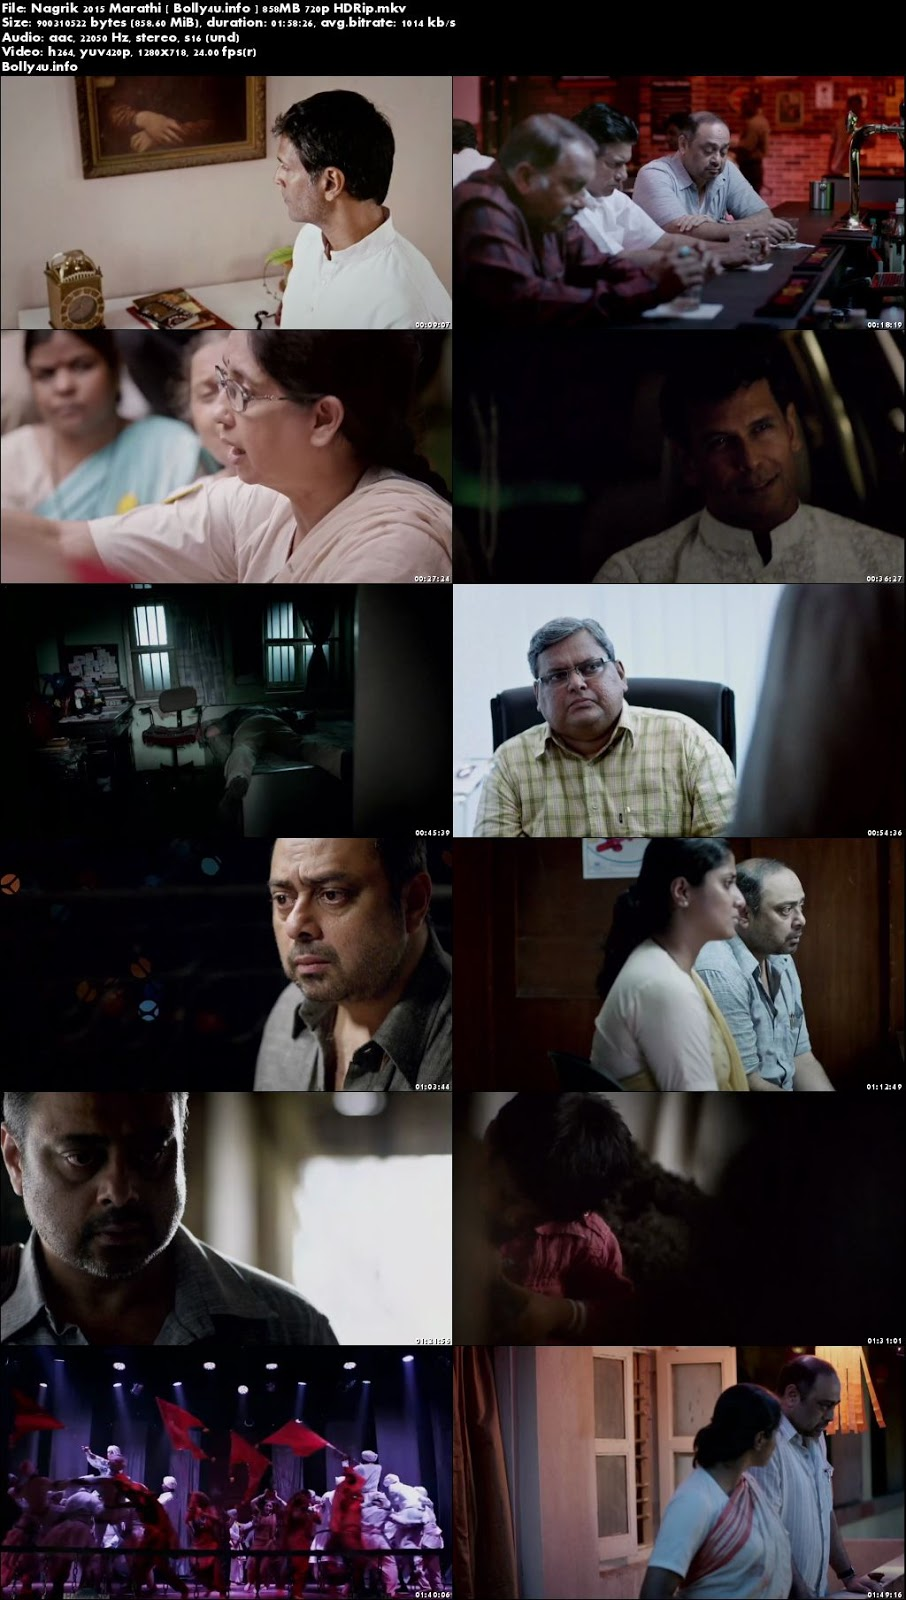 Screen Shoots of Nagrik 2015 HDRip 300MB Marathi Movie 480p Watch Online Free at Bolly4u.info